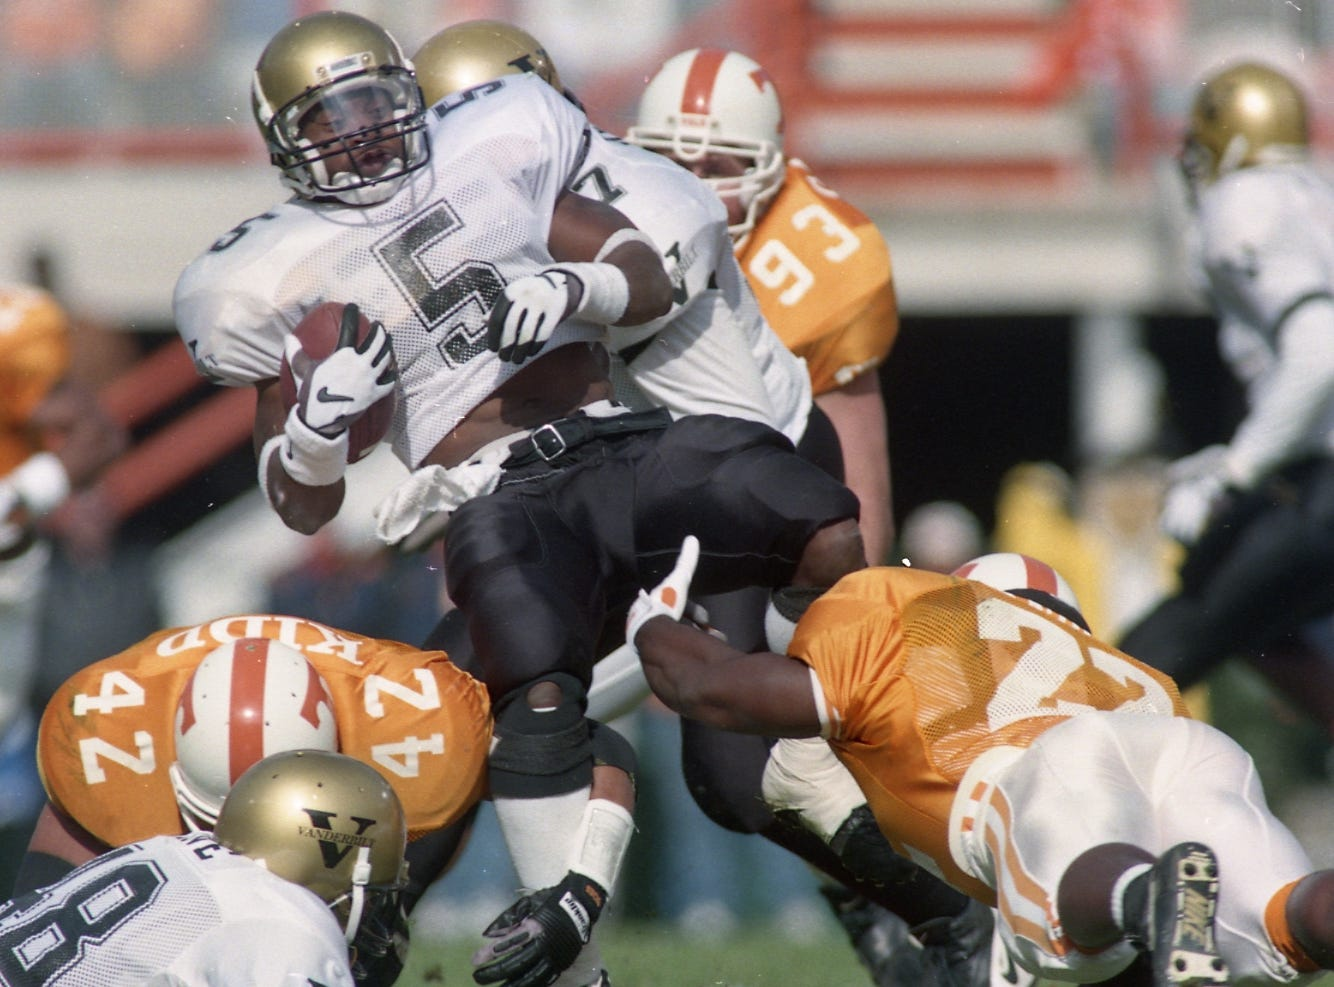 Jessee Sanders (22), George Kidd (42), Scott Galyon (93) shut down Vanderbilt's Jermaine Johnson on November 25, 1995.